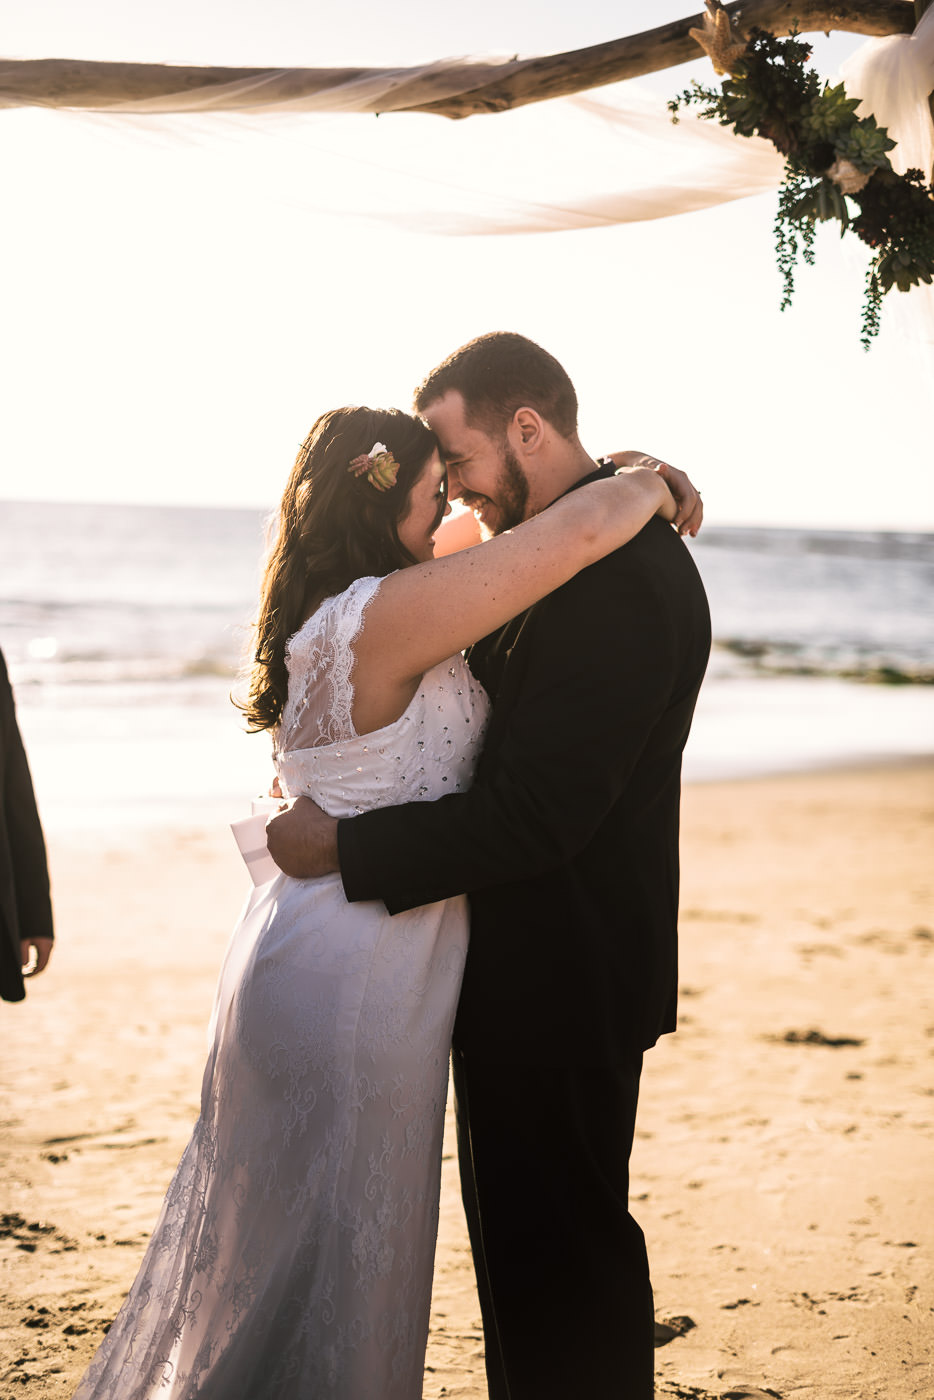 Newly married couple stare deeply into each others eyes after their wedding at Laguna Beach.